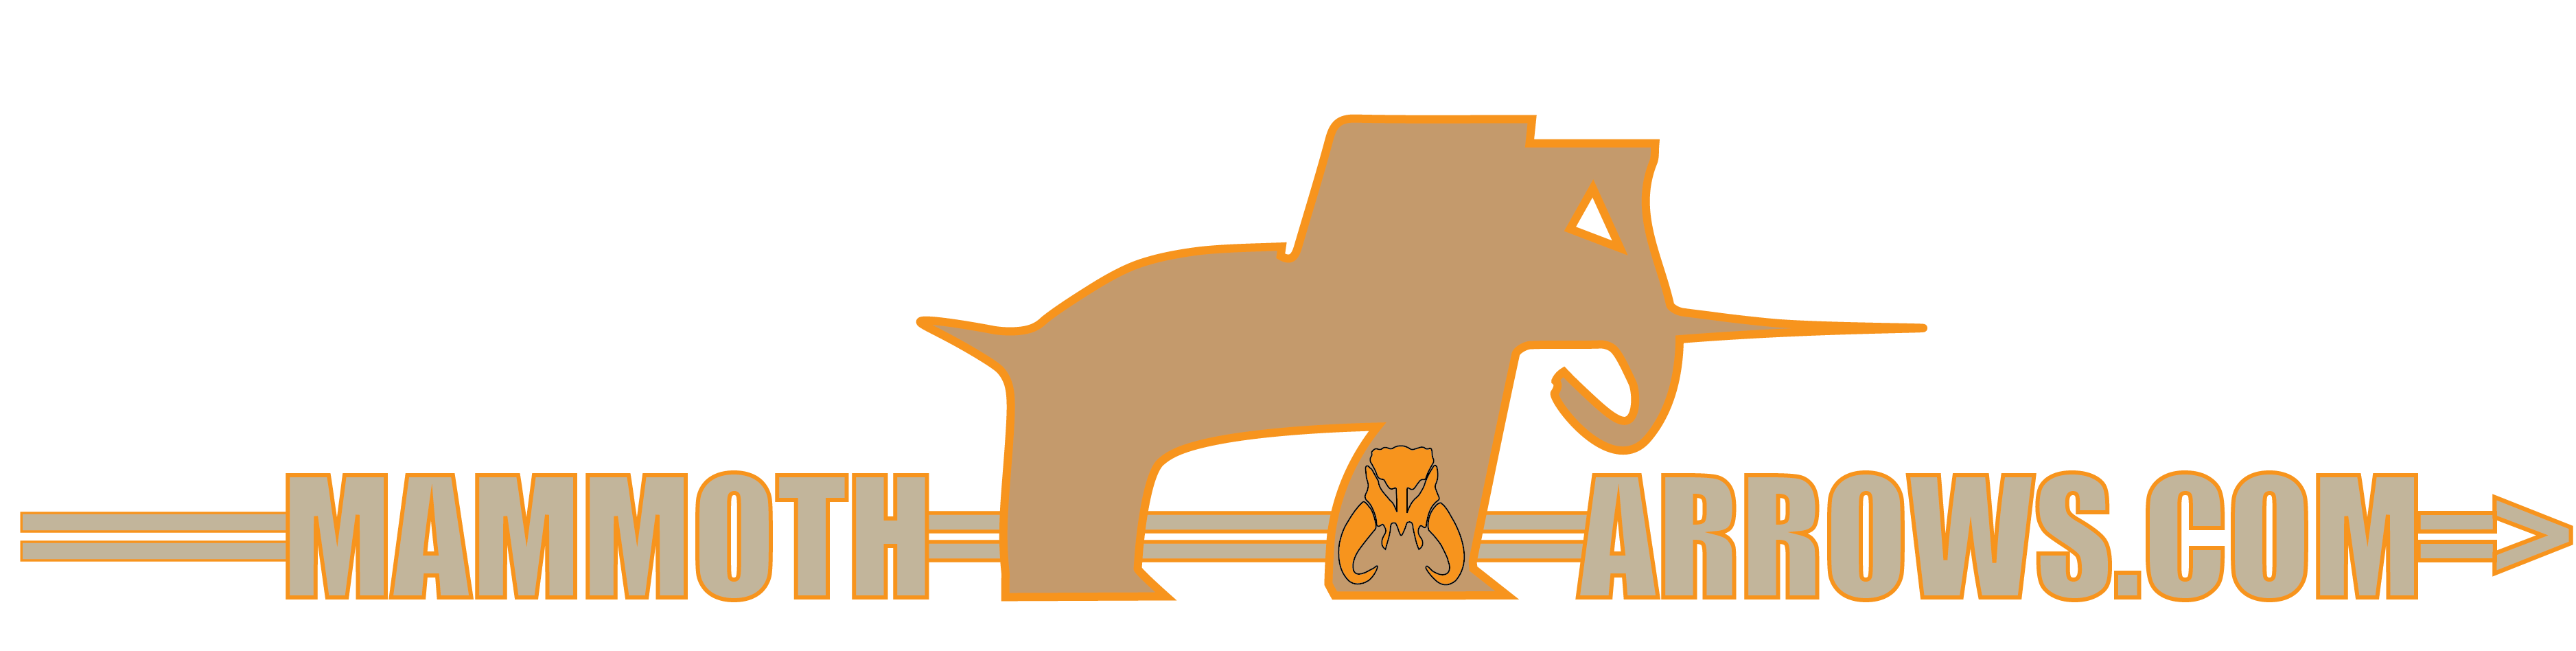 logo-mammoth.png